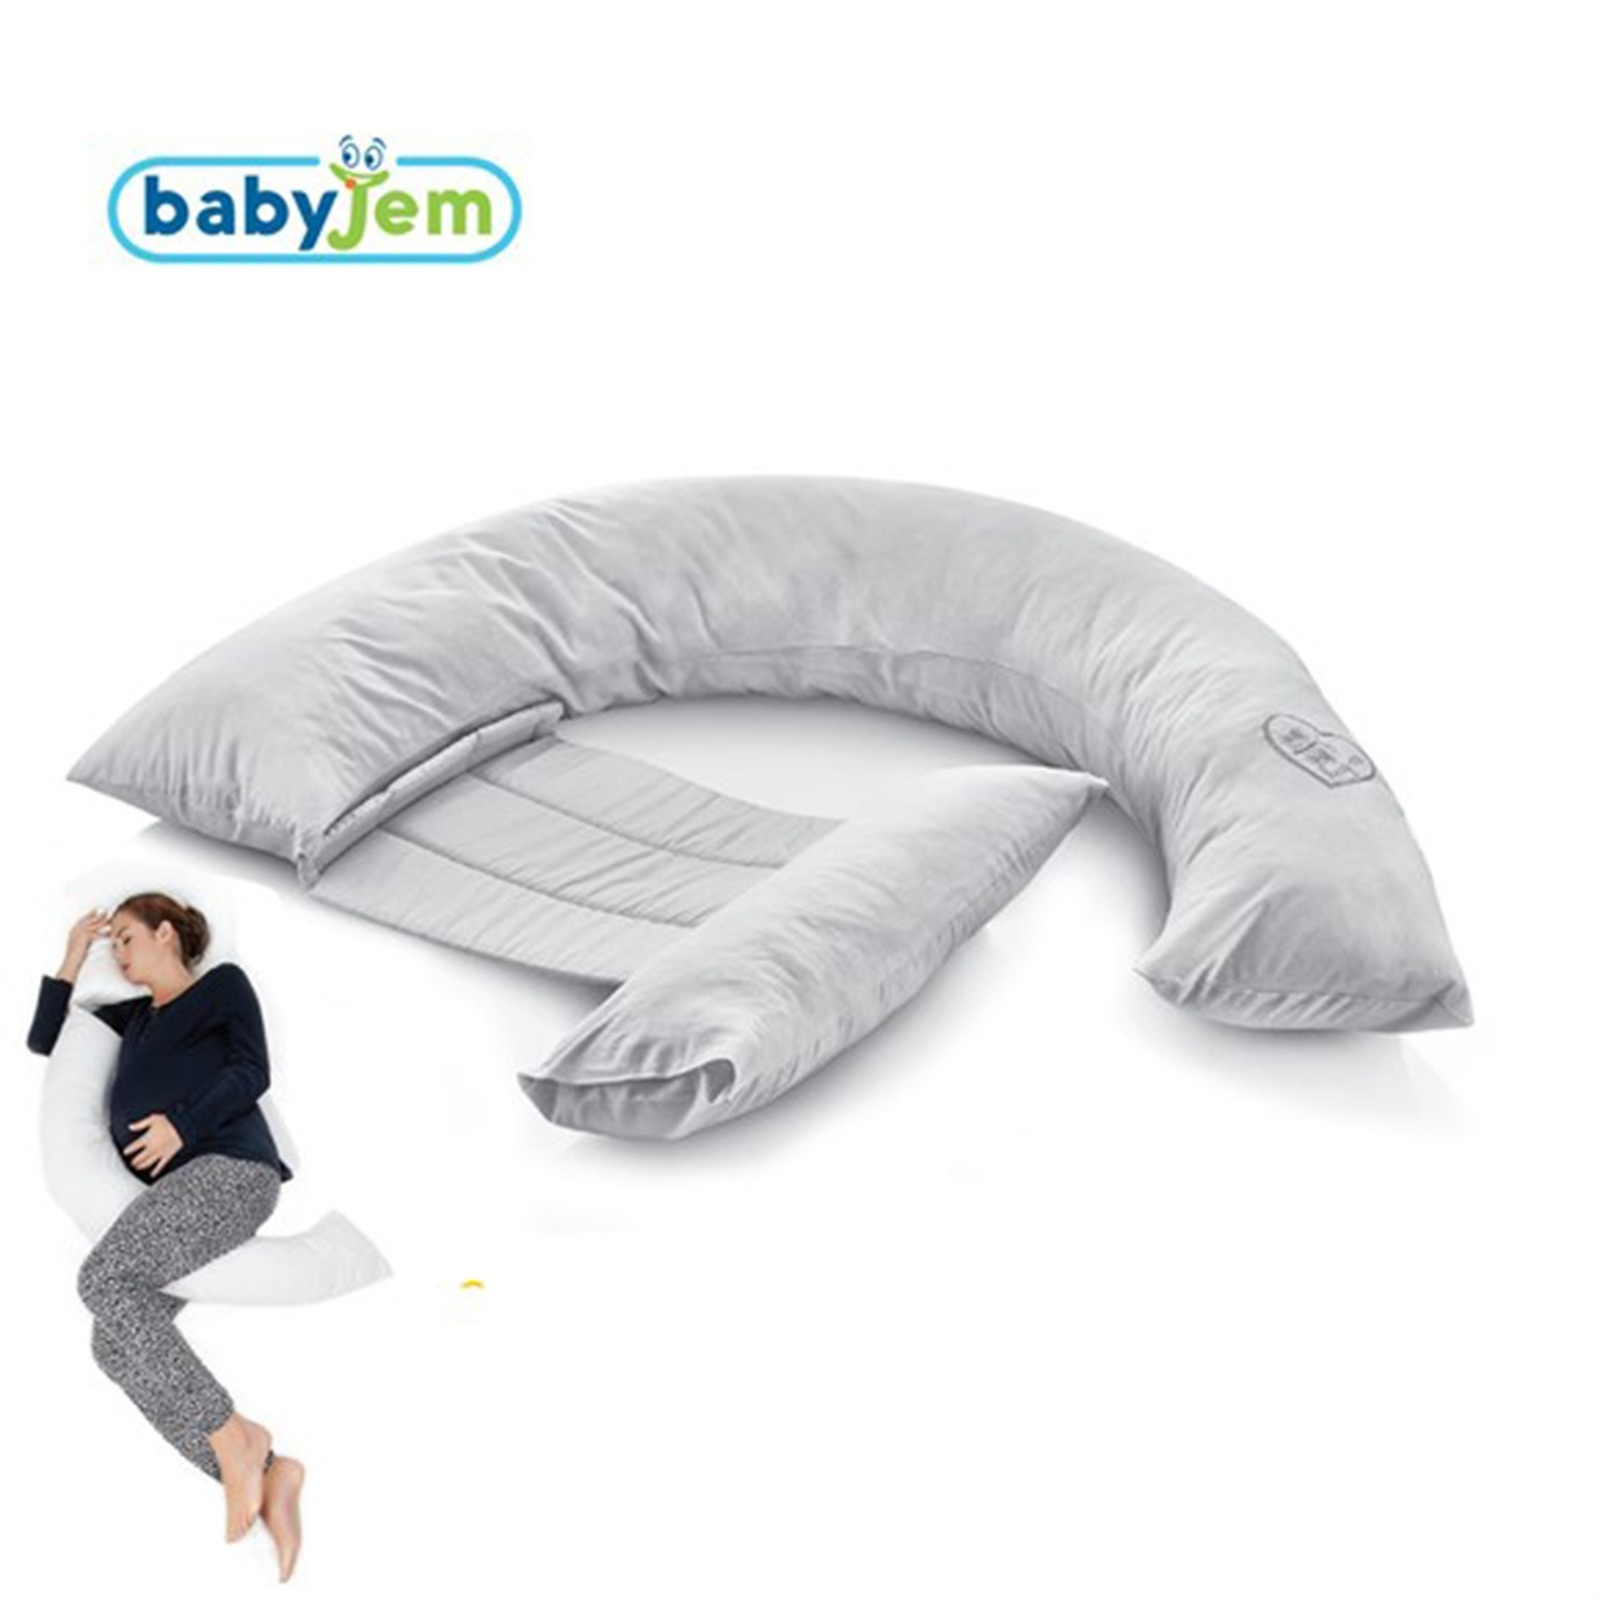 Ebebek Babyjem Back-Supported Nursing Breastfeeding Pillow